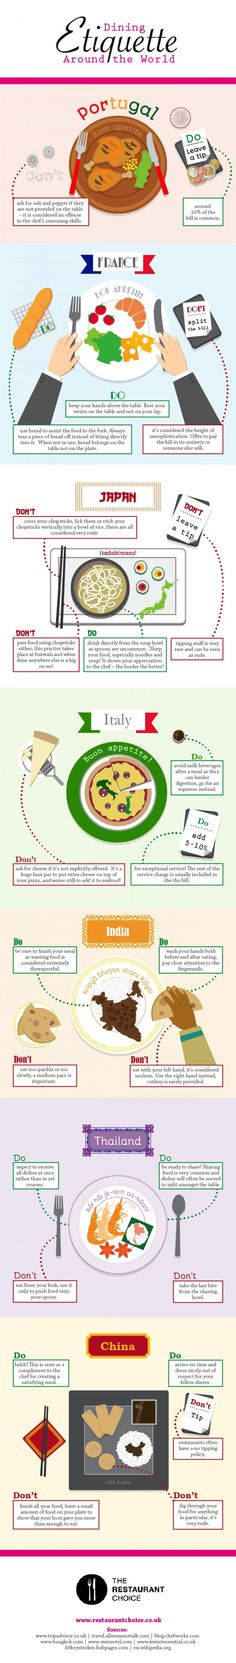 Eating All Over The World - Infographic | But I'm left handed! I can't eat with my right hand! The owners of my favorite Indian restaurant must think I'm terrible!!!